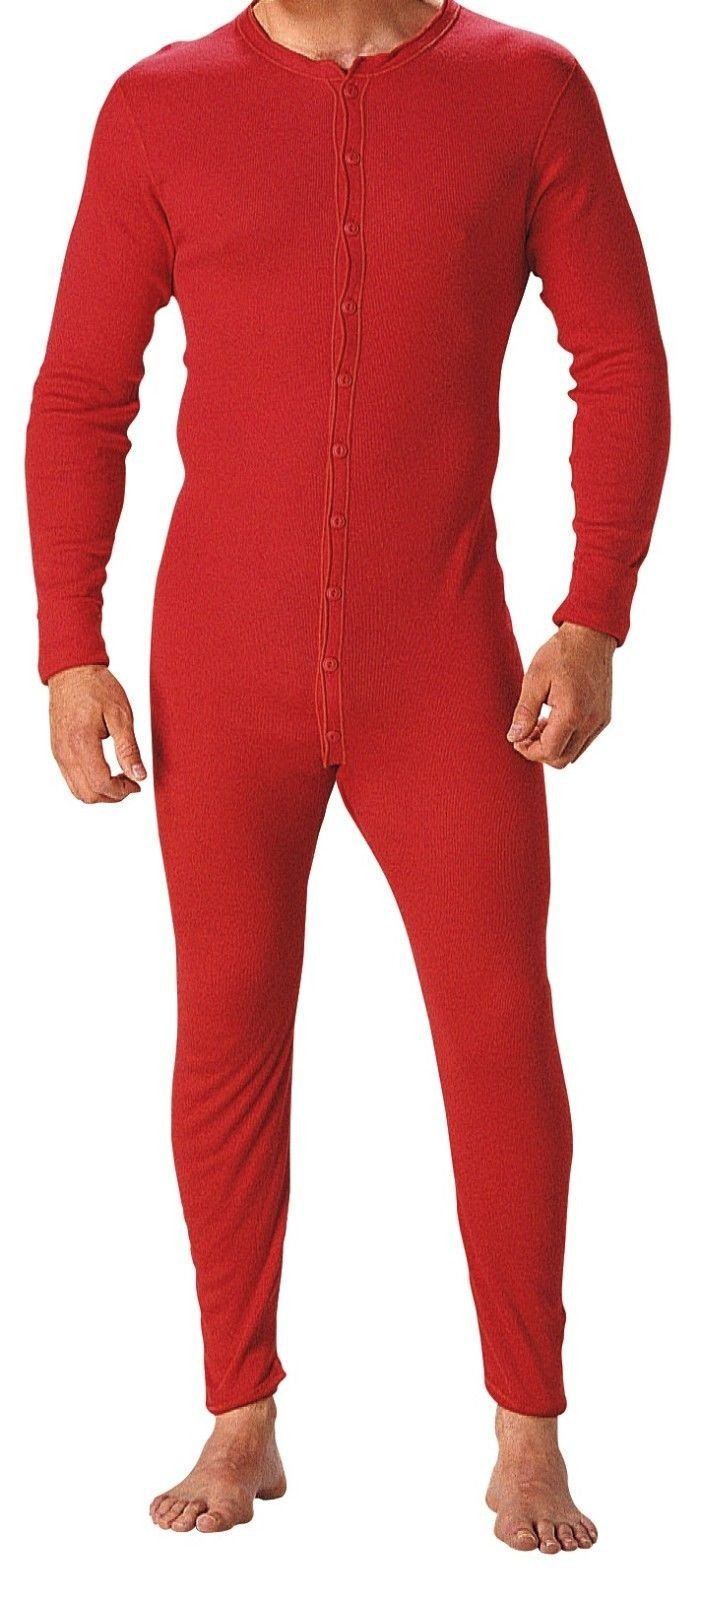 dddcc82c86 The Original Red Union Suit 100% Cotton One Piece Coverall / Long John –  Grunt Force